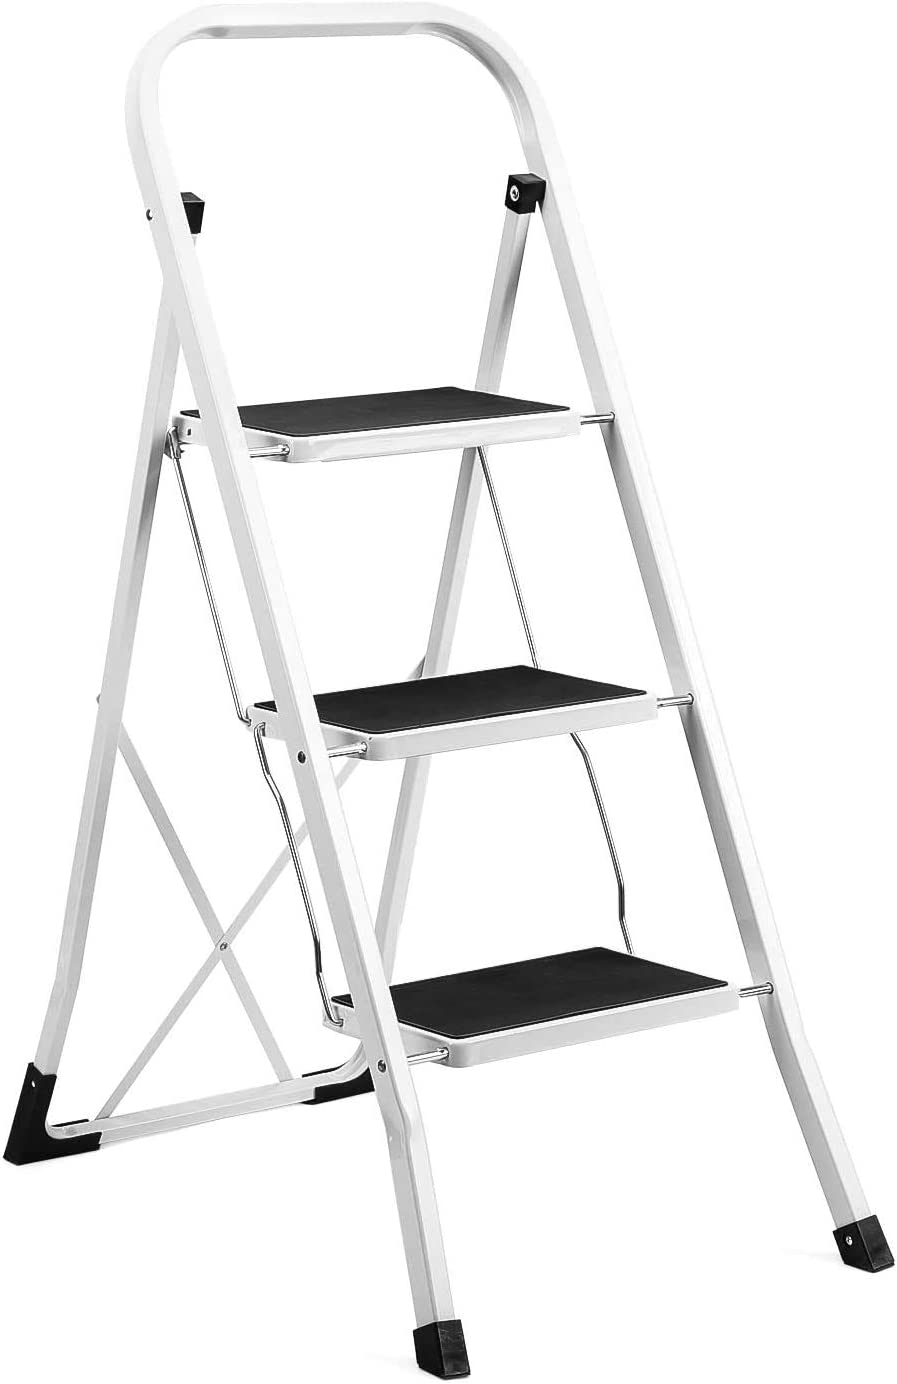 ACSTEP 3 Step Ladder Folding Step Stool Ladder with Handgrip Anti-Slip Sturdy and Wide Pedal Multi-Use for Household and Office Portable Step Stool Steel 330lbs White